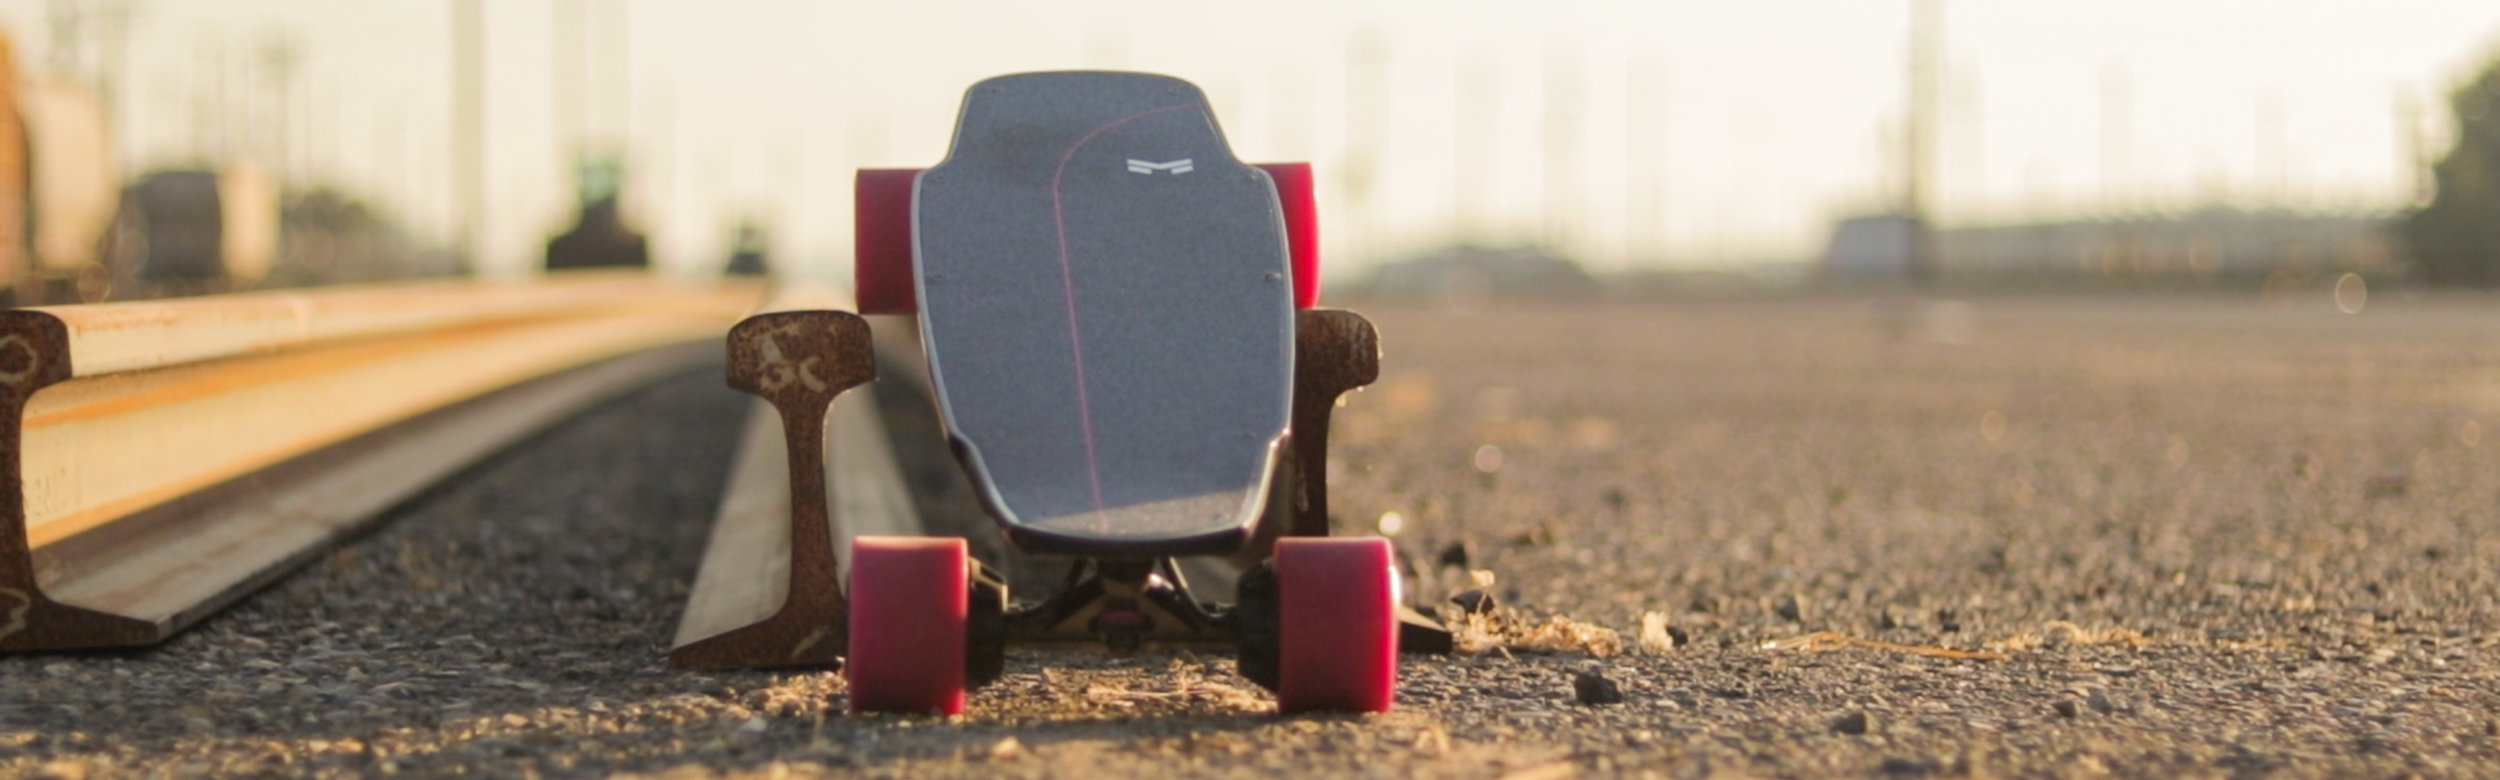 electrified-reviews-miles-board-electric-skateboard-banner-image.jpg